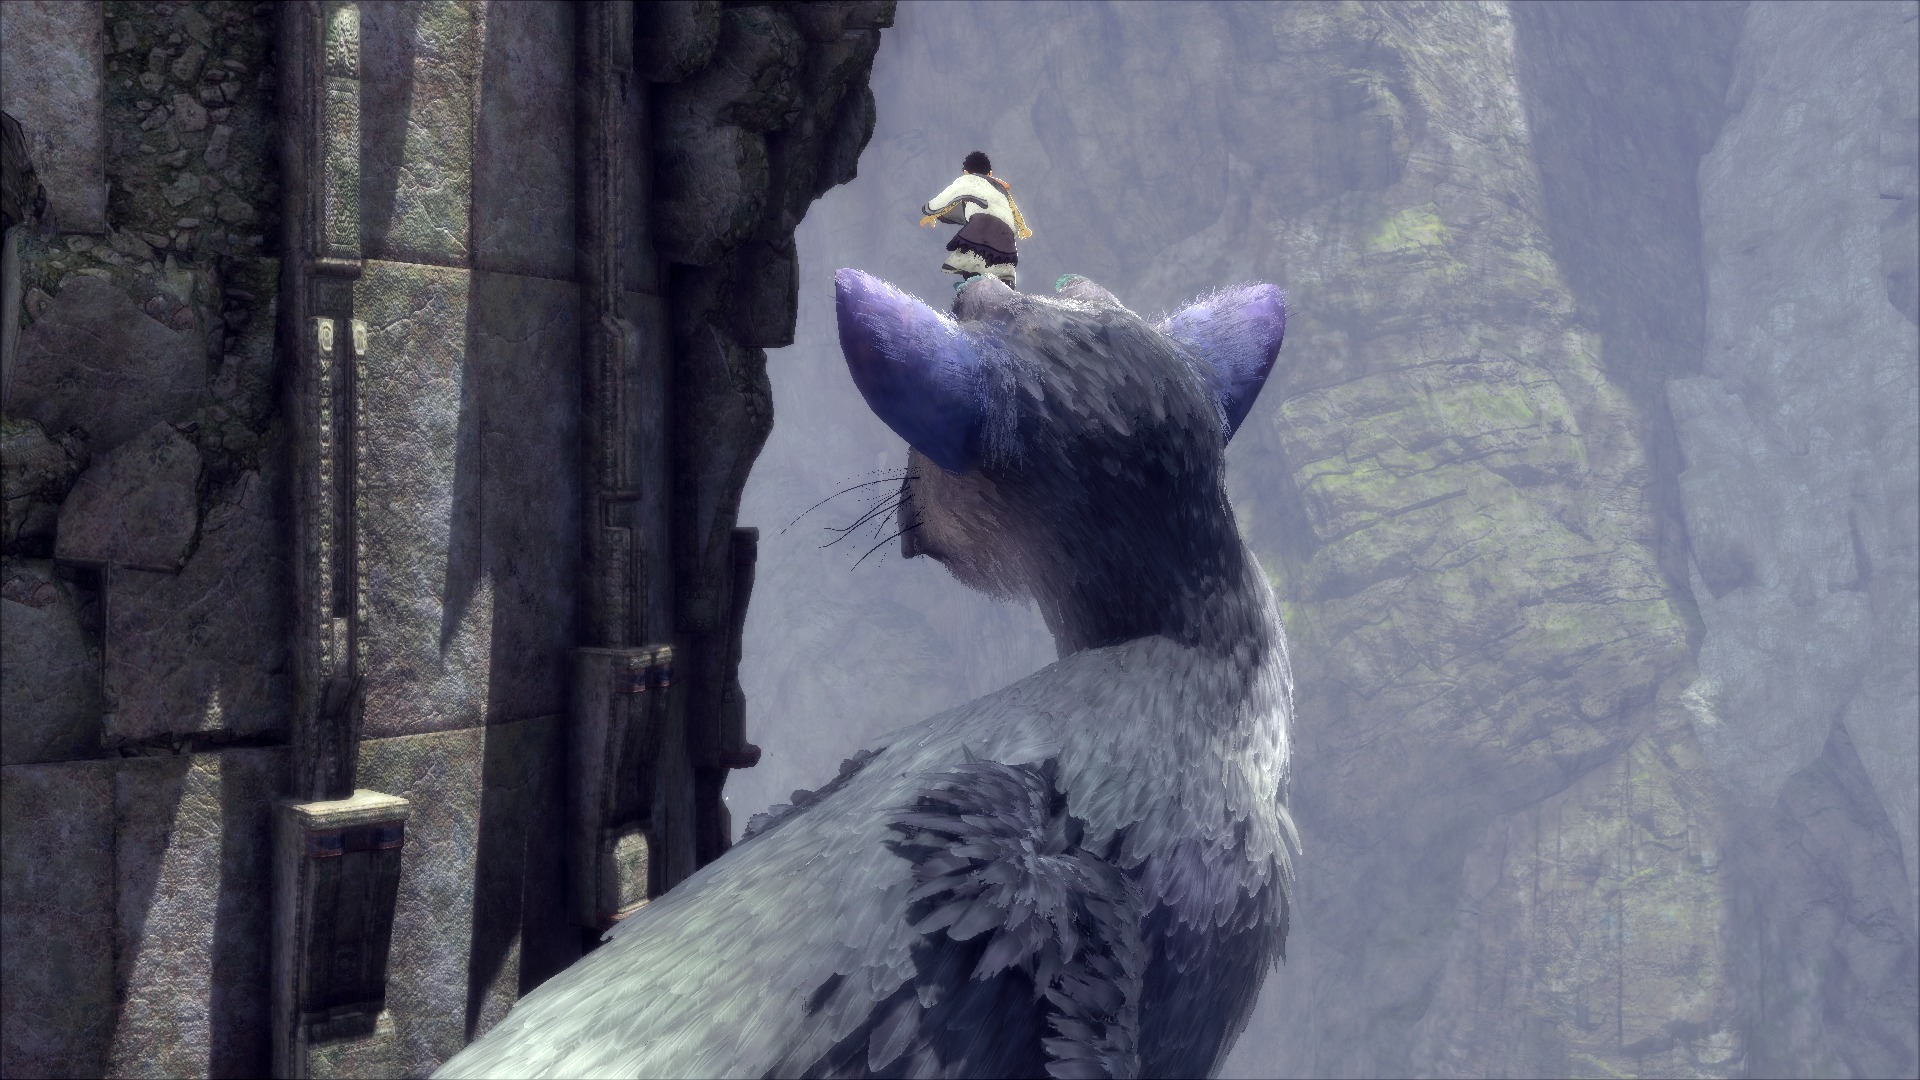 30 minutes of new The Last Guardian gameplay footage released